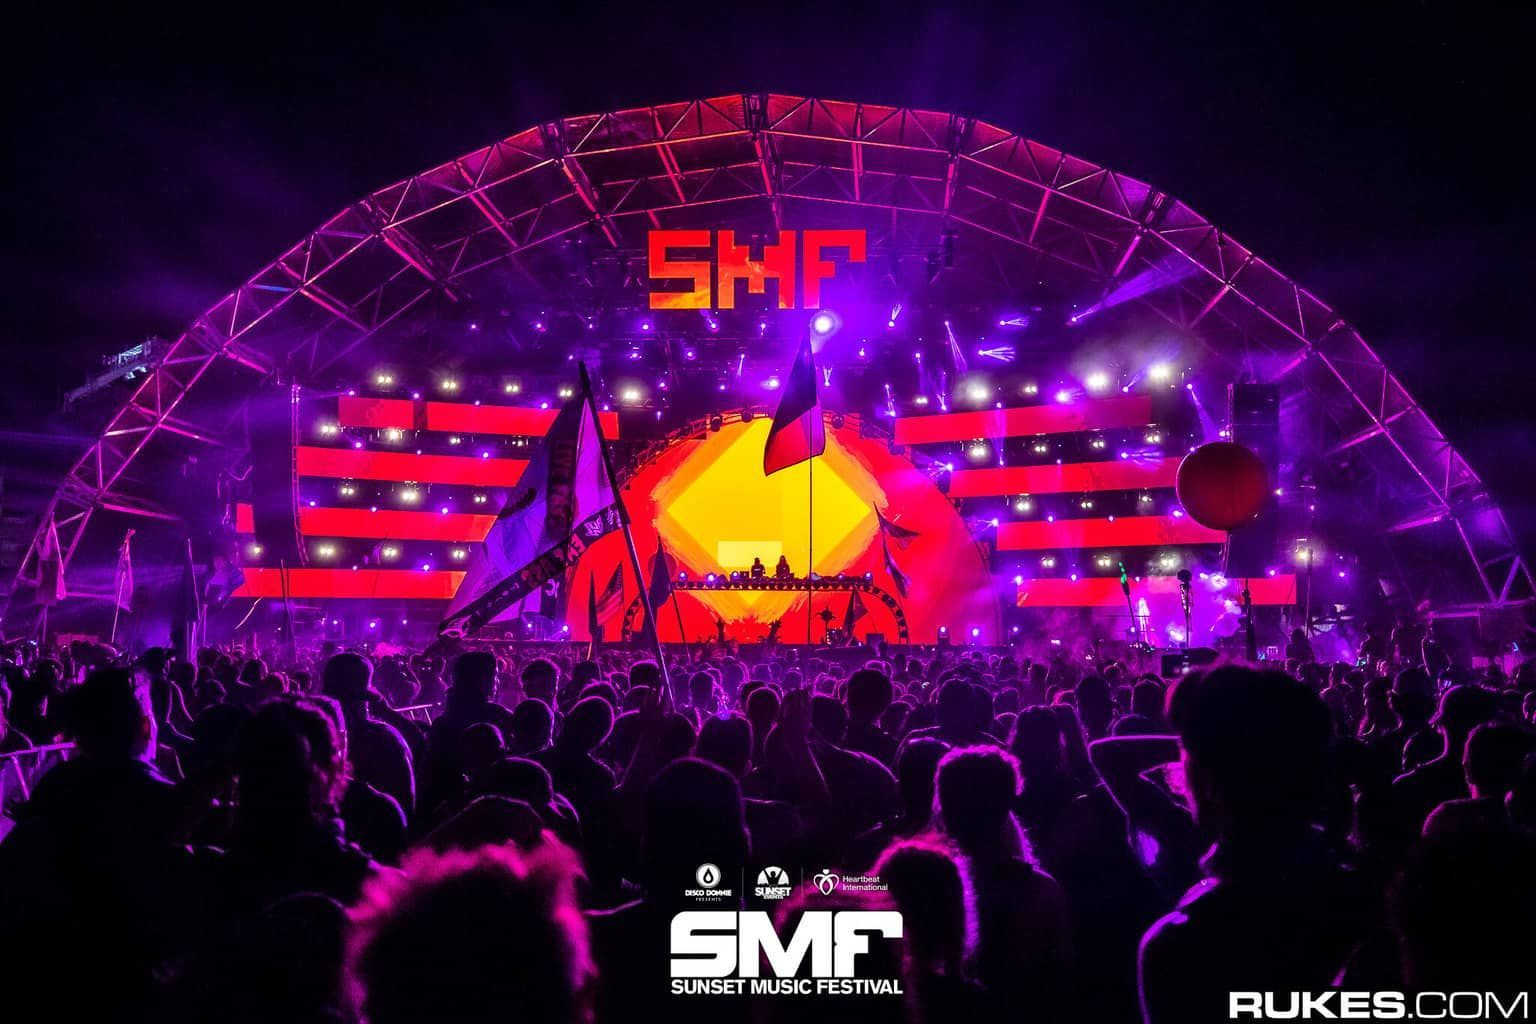 Sunset 2 0 Music Festival Releases Epic Phase 2 Lineup Sunset Music Festival Music Festival Festival